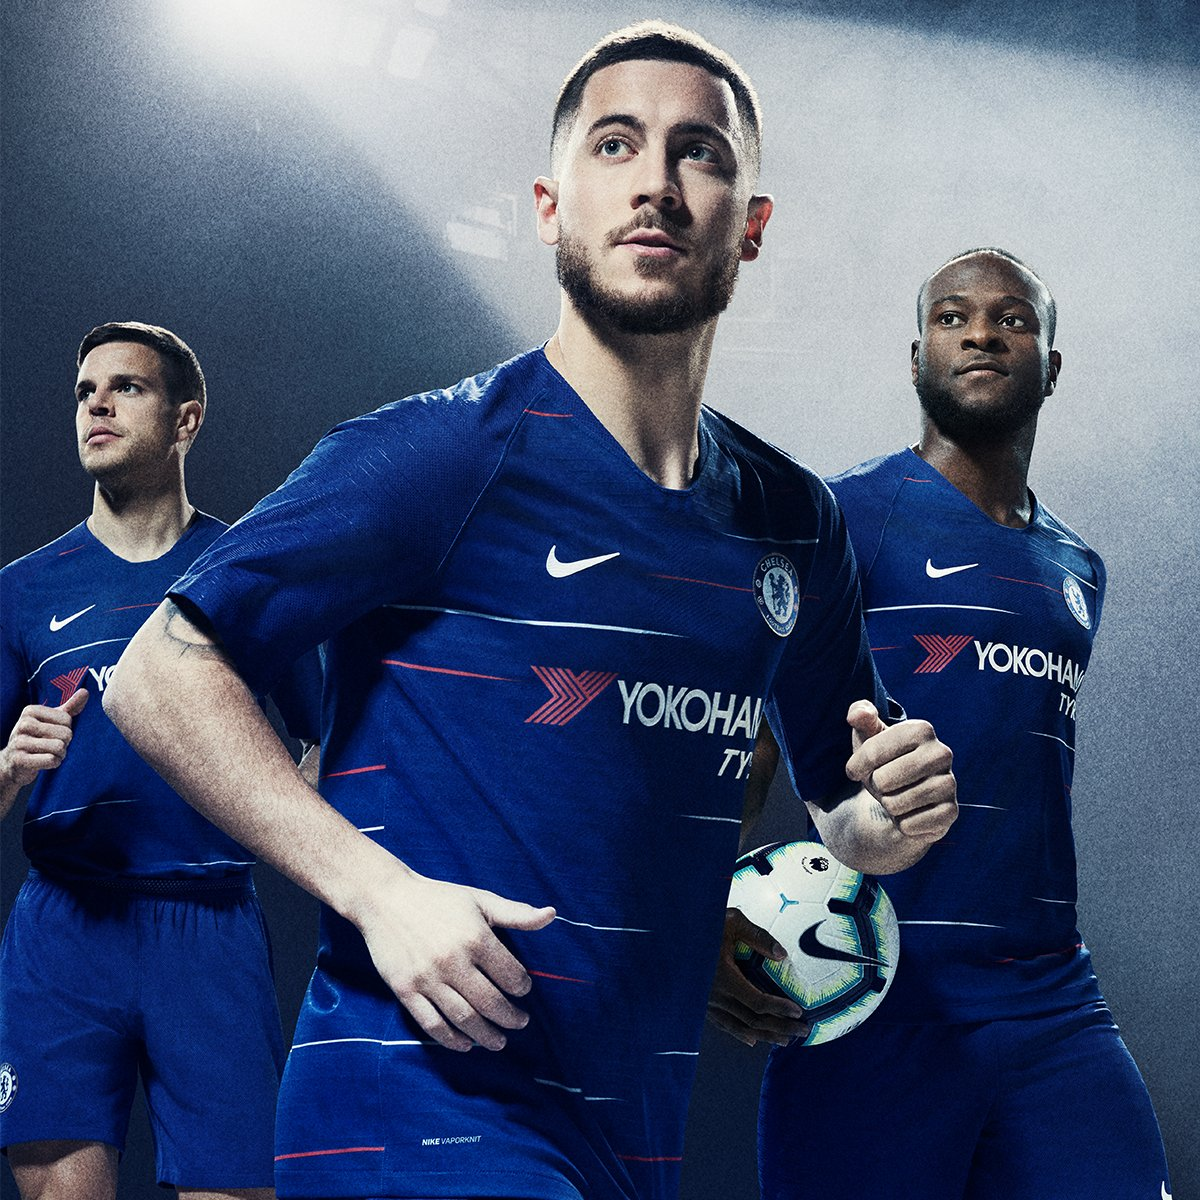 a4948ee55b1 Chelsea s Smart New Home Kit For 2018 19 Season Sees Another Return For Red  Trim (Photos)